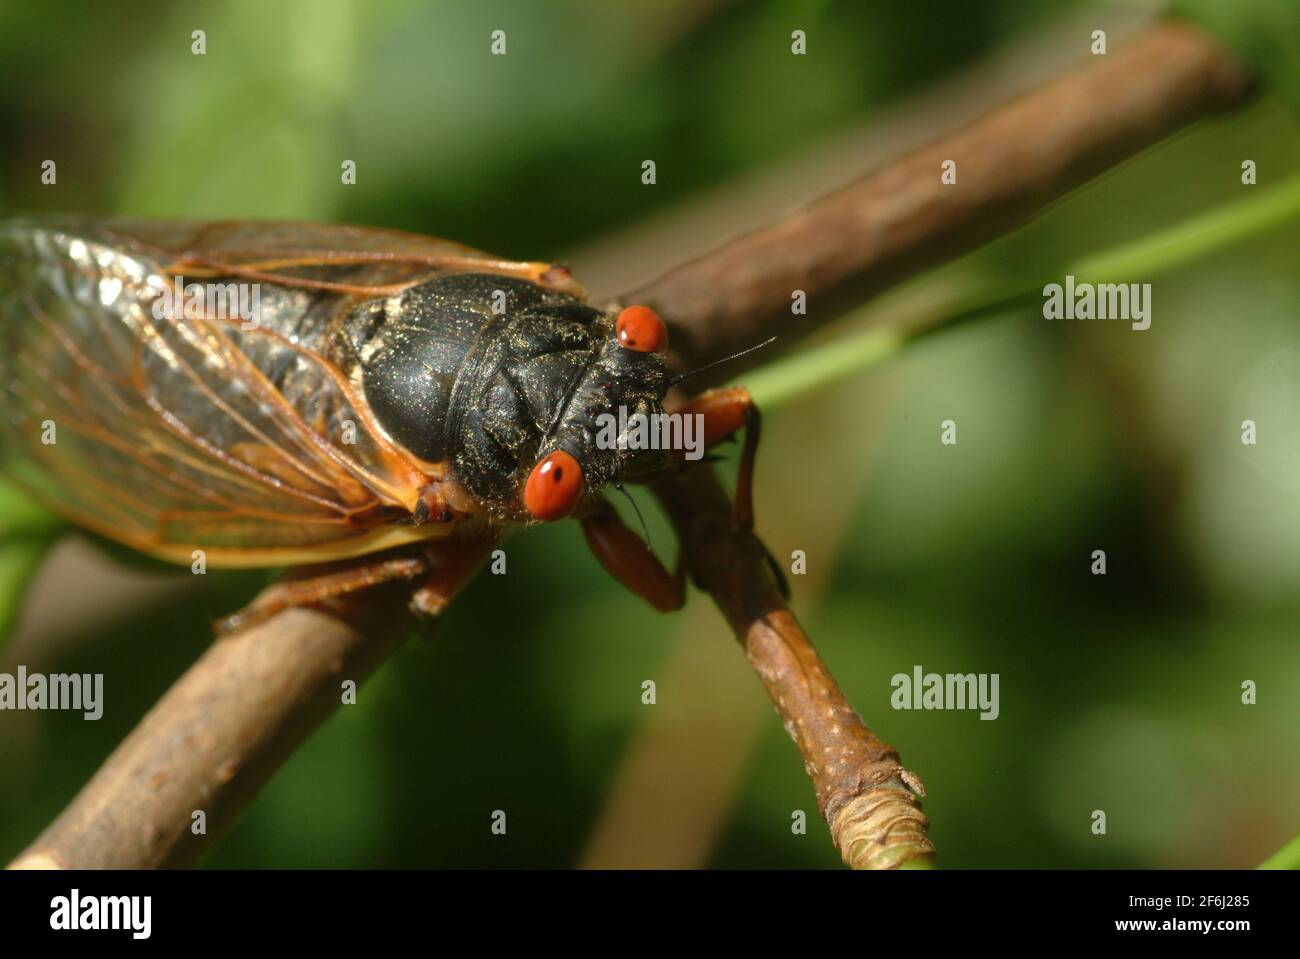 USA Maryland Insect Cicada Cicadas Cicadoidea Brood X 17 year cicada emerges from the ground to reproduce Stock Photo